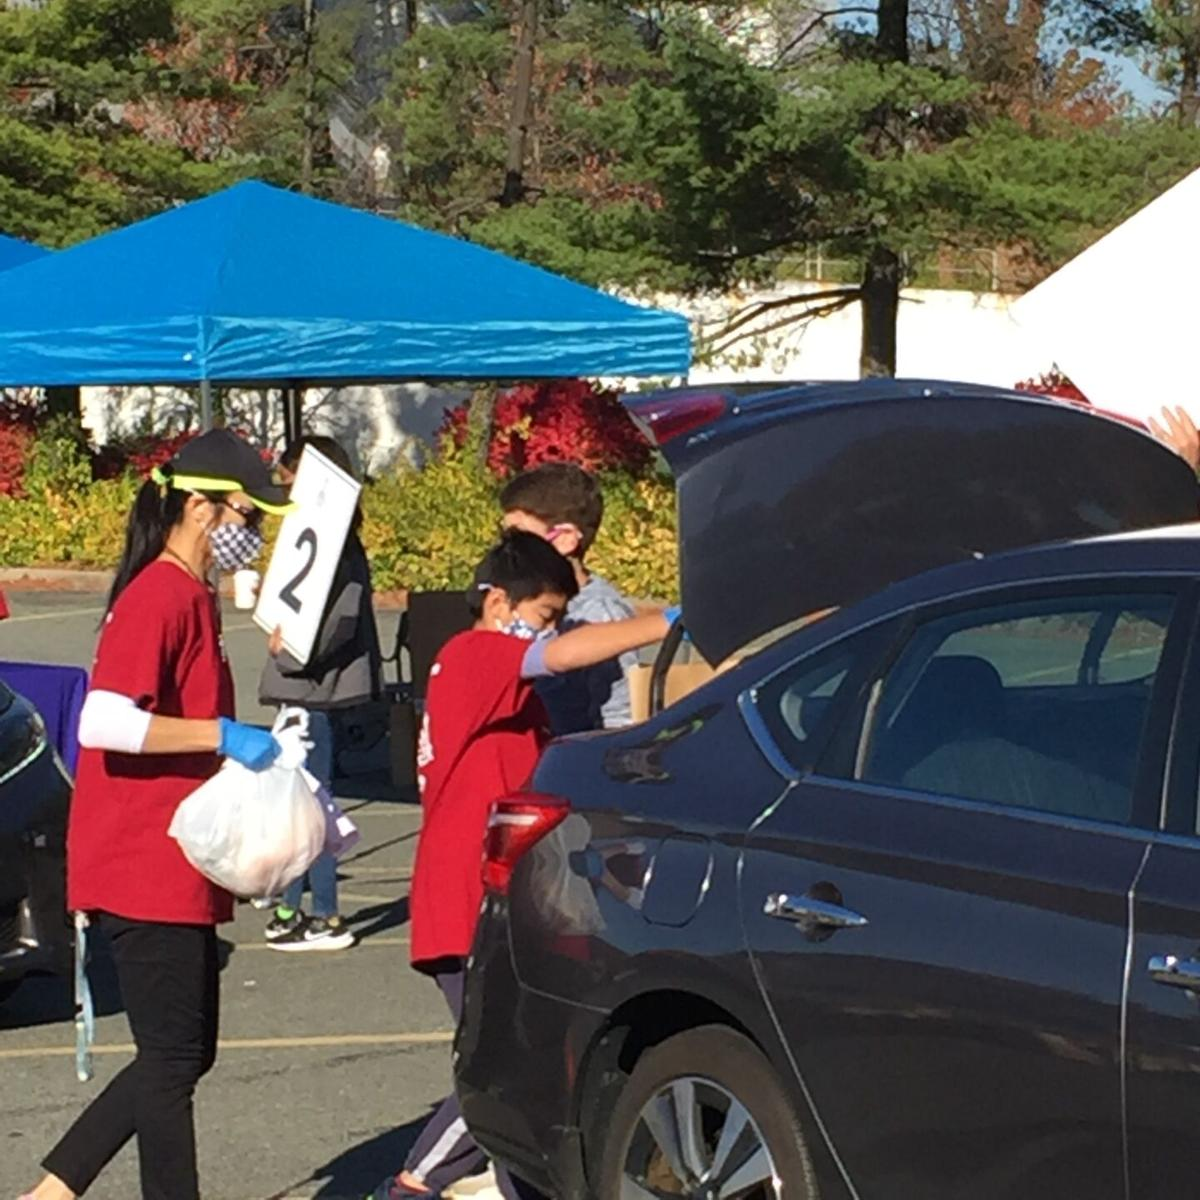 2020 Food Distribution Lakeforest Mall 3a 11072020.jpg